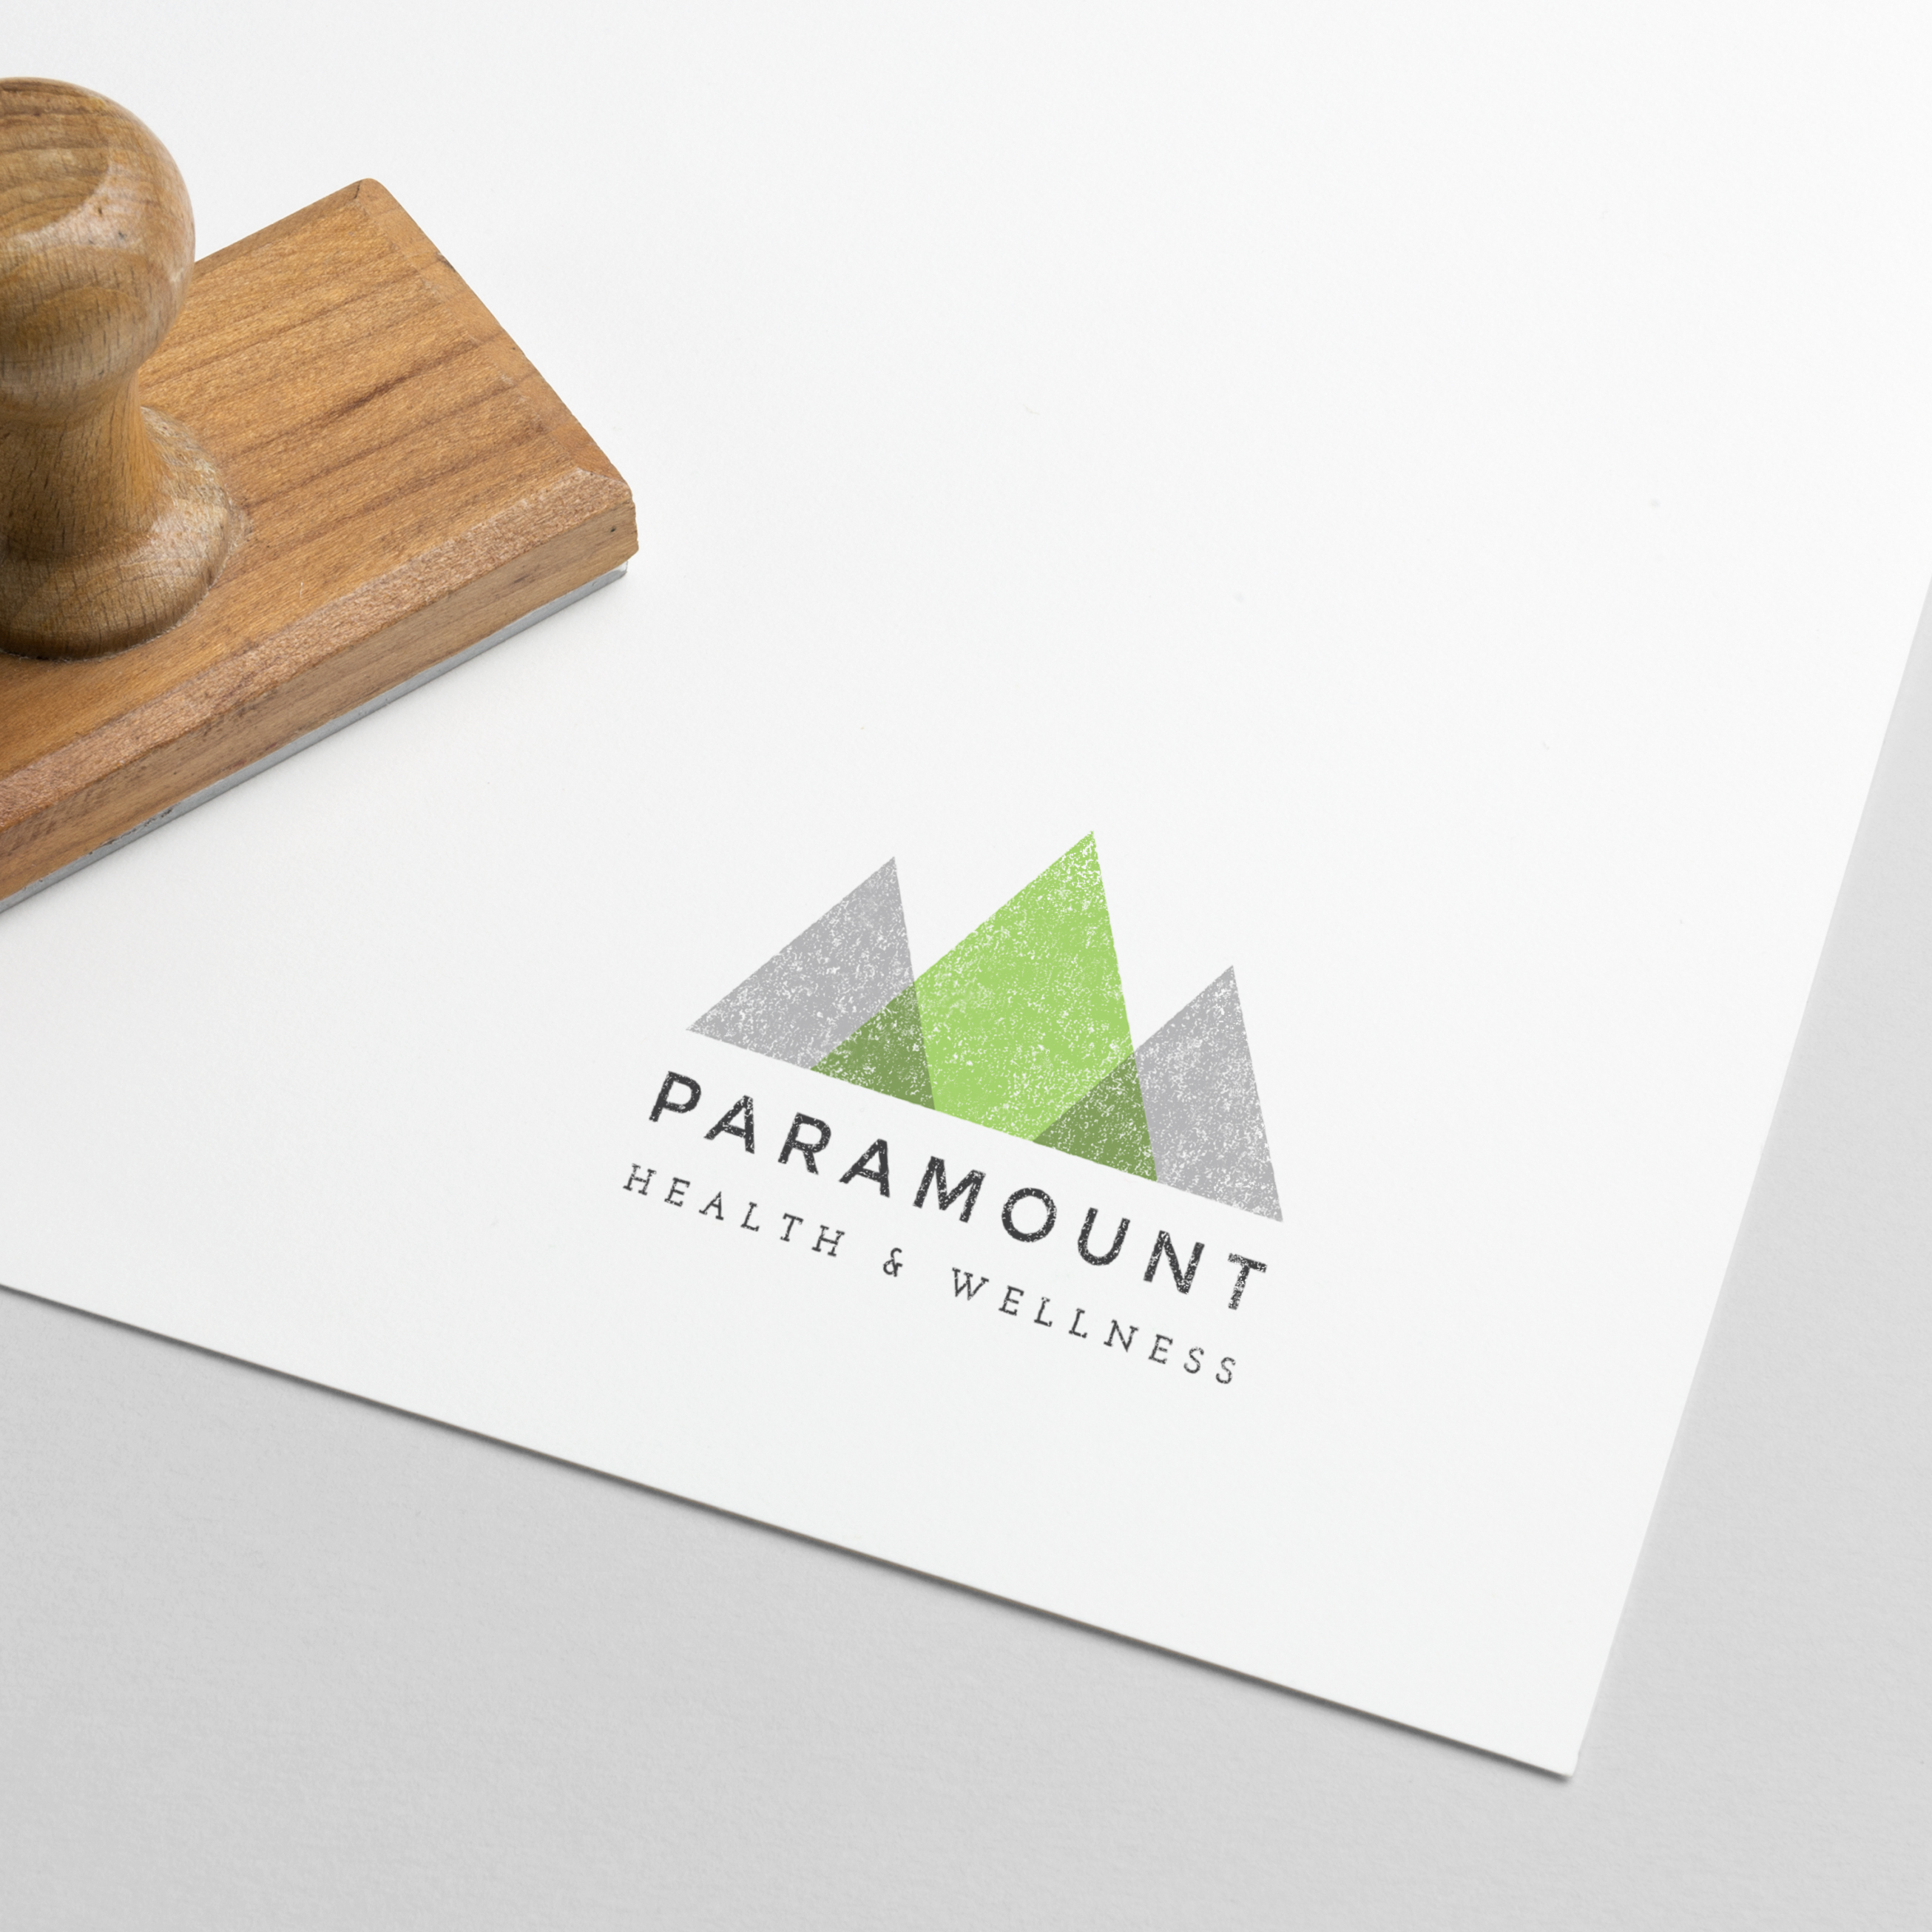 Paramount Logo & Business Card – Hey there, I\'m Gabriel.